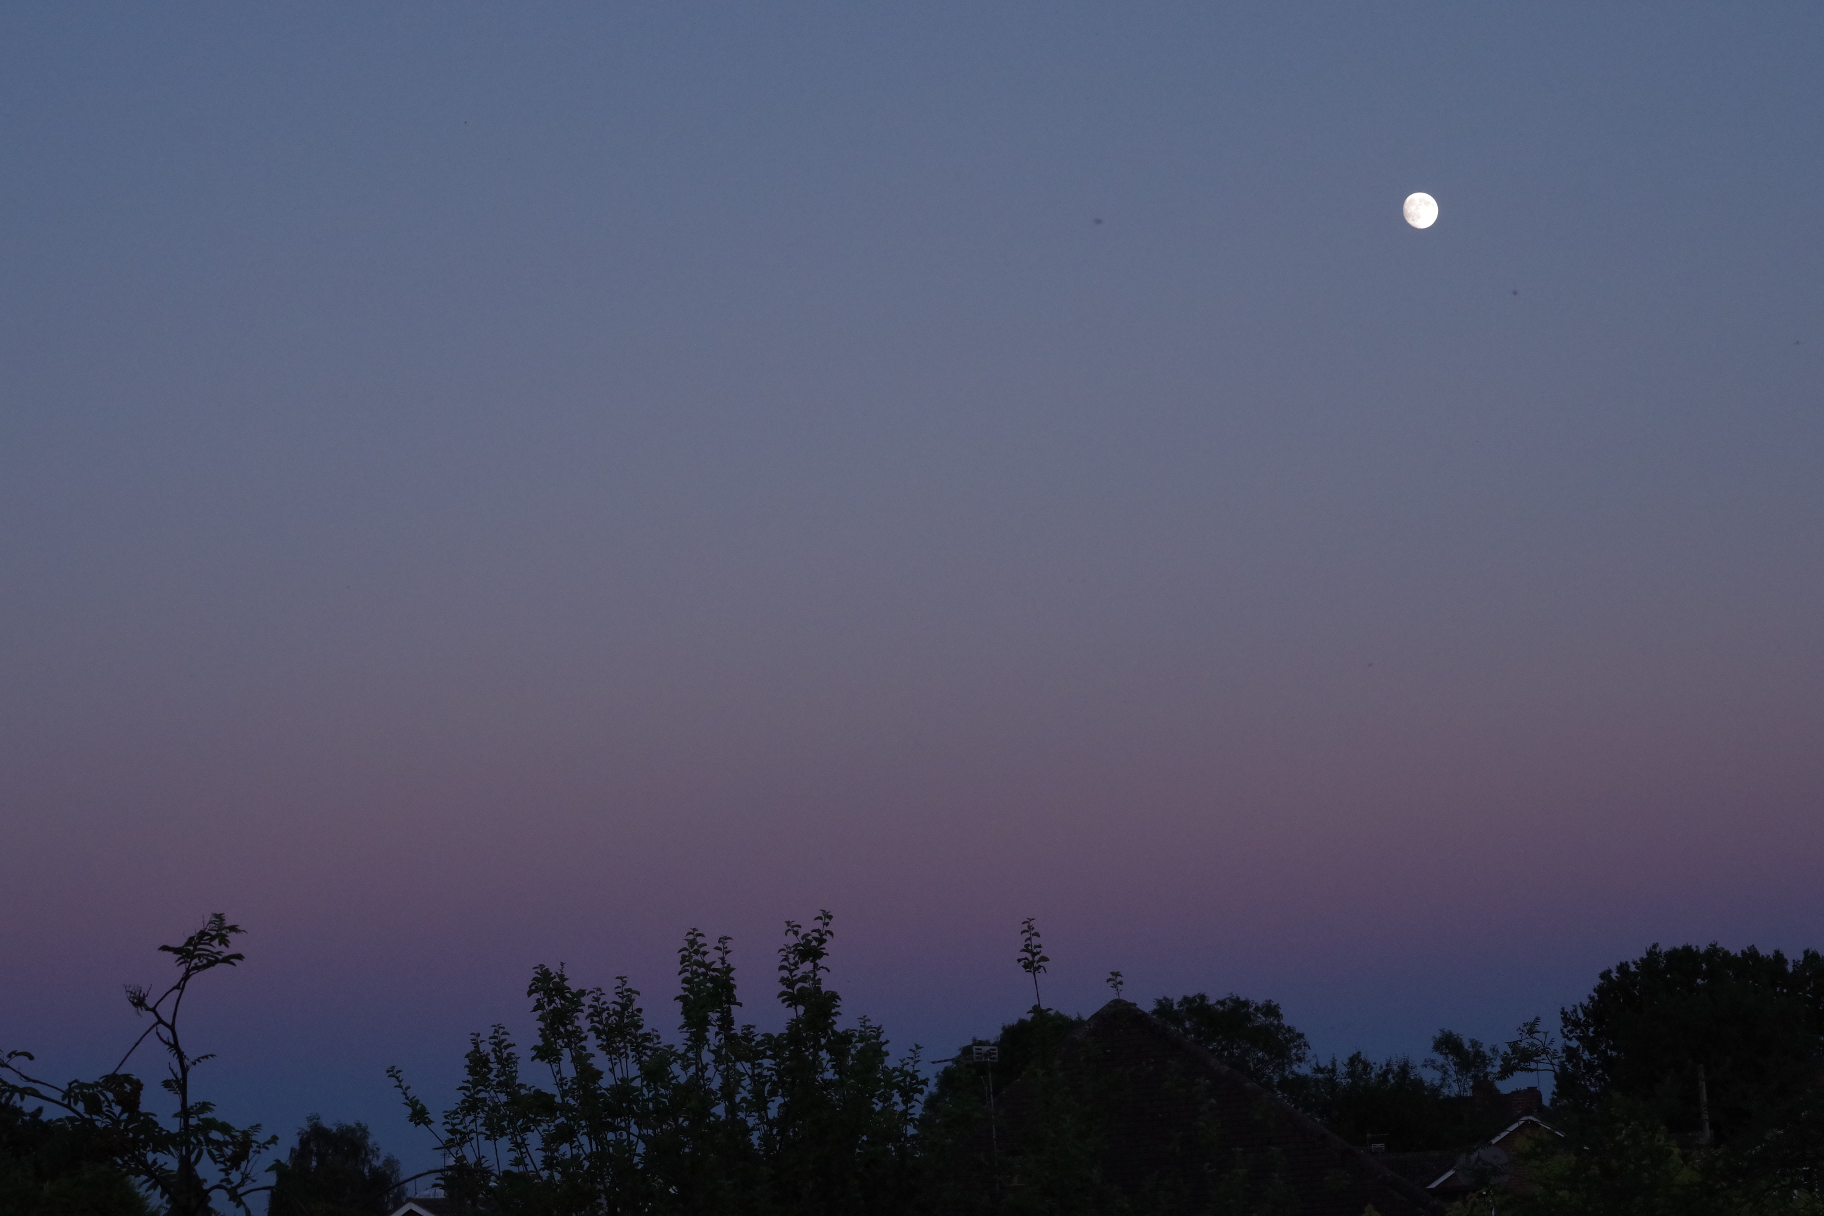 Sky at Dusk With Moon